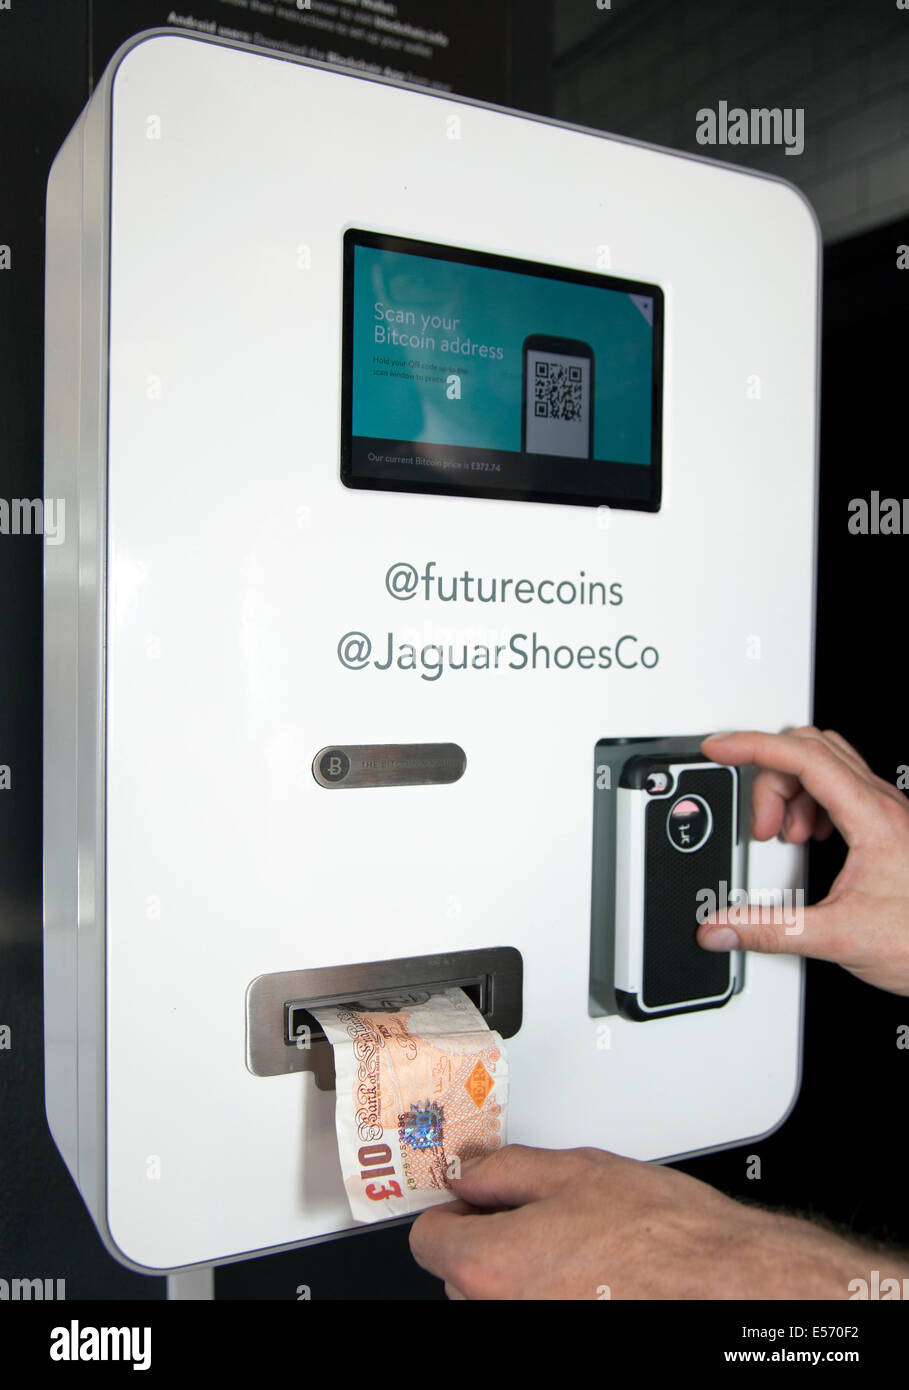 Shoreditch Tube Station: UK's First Bitcoin ATM In Old Shoreditch Station Cafe/bar